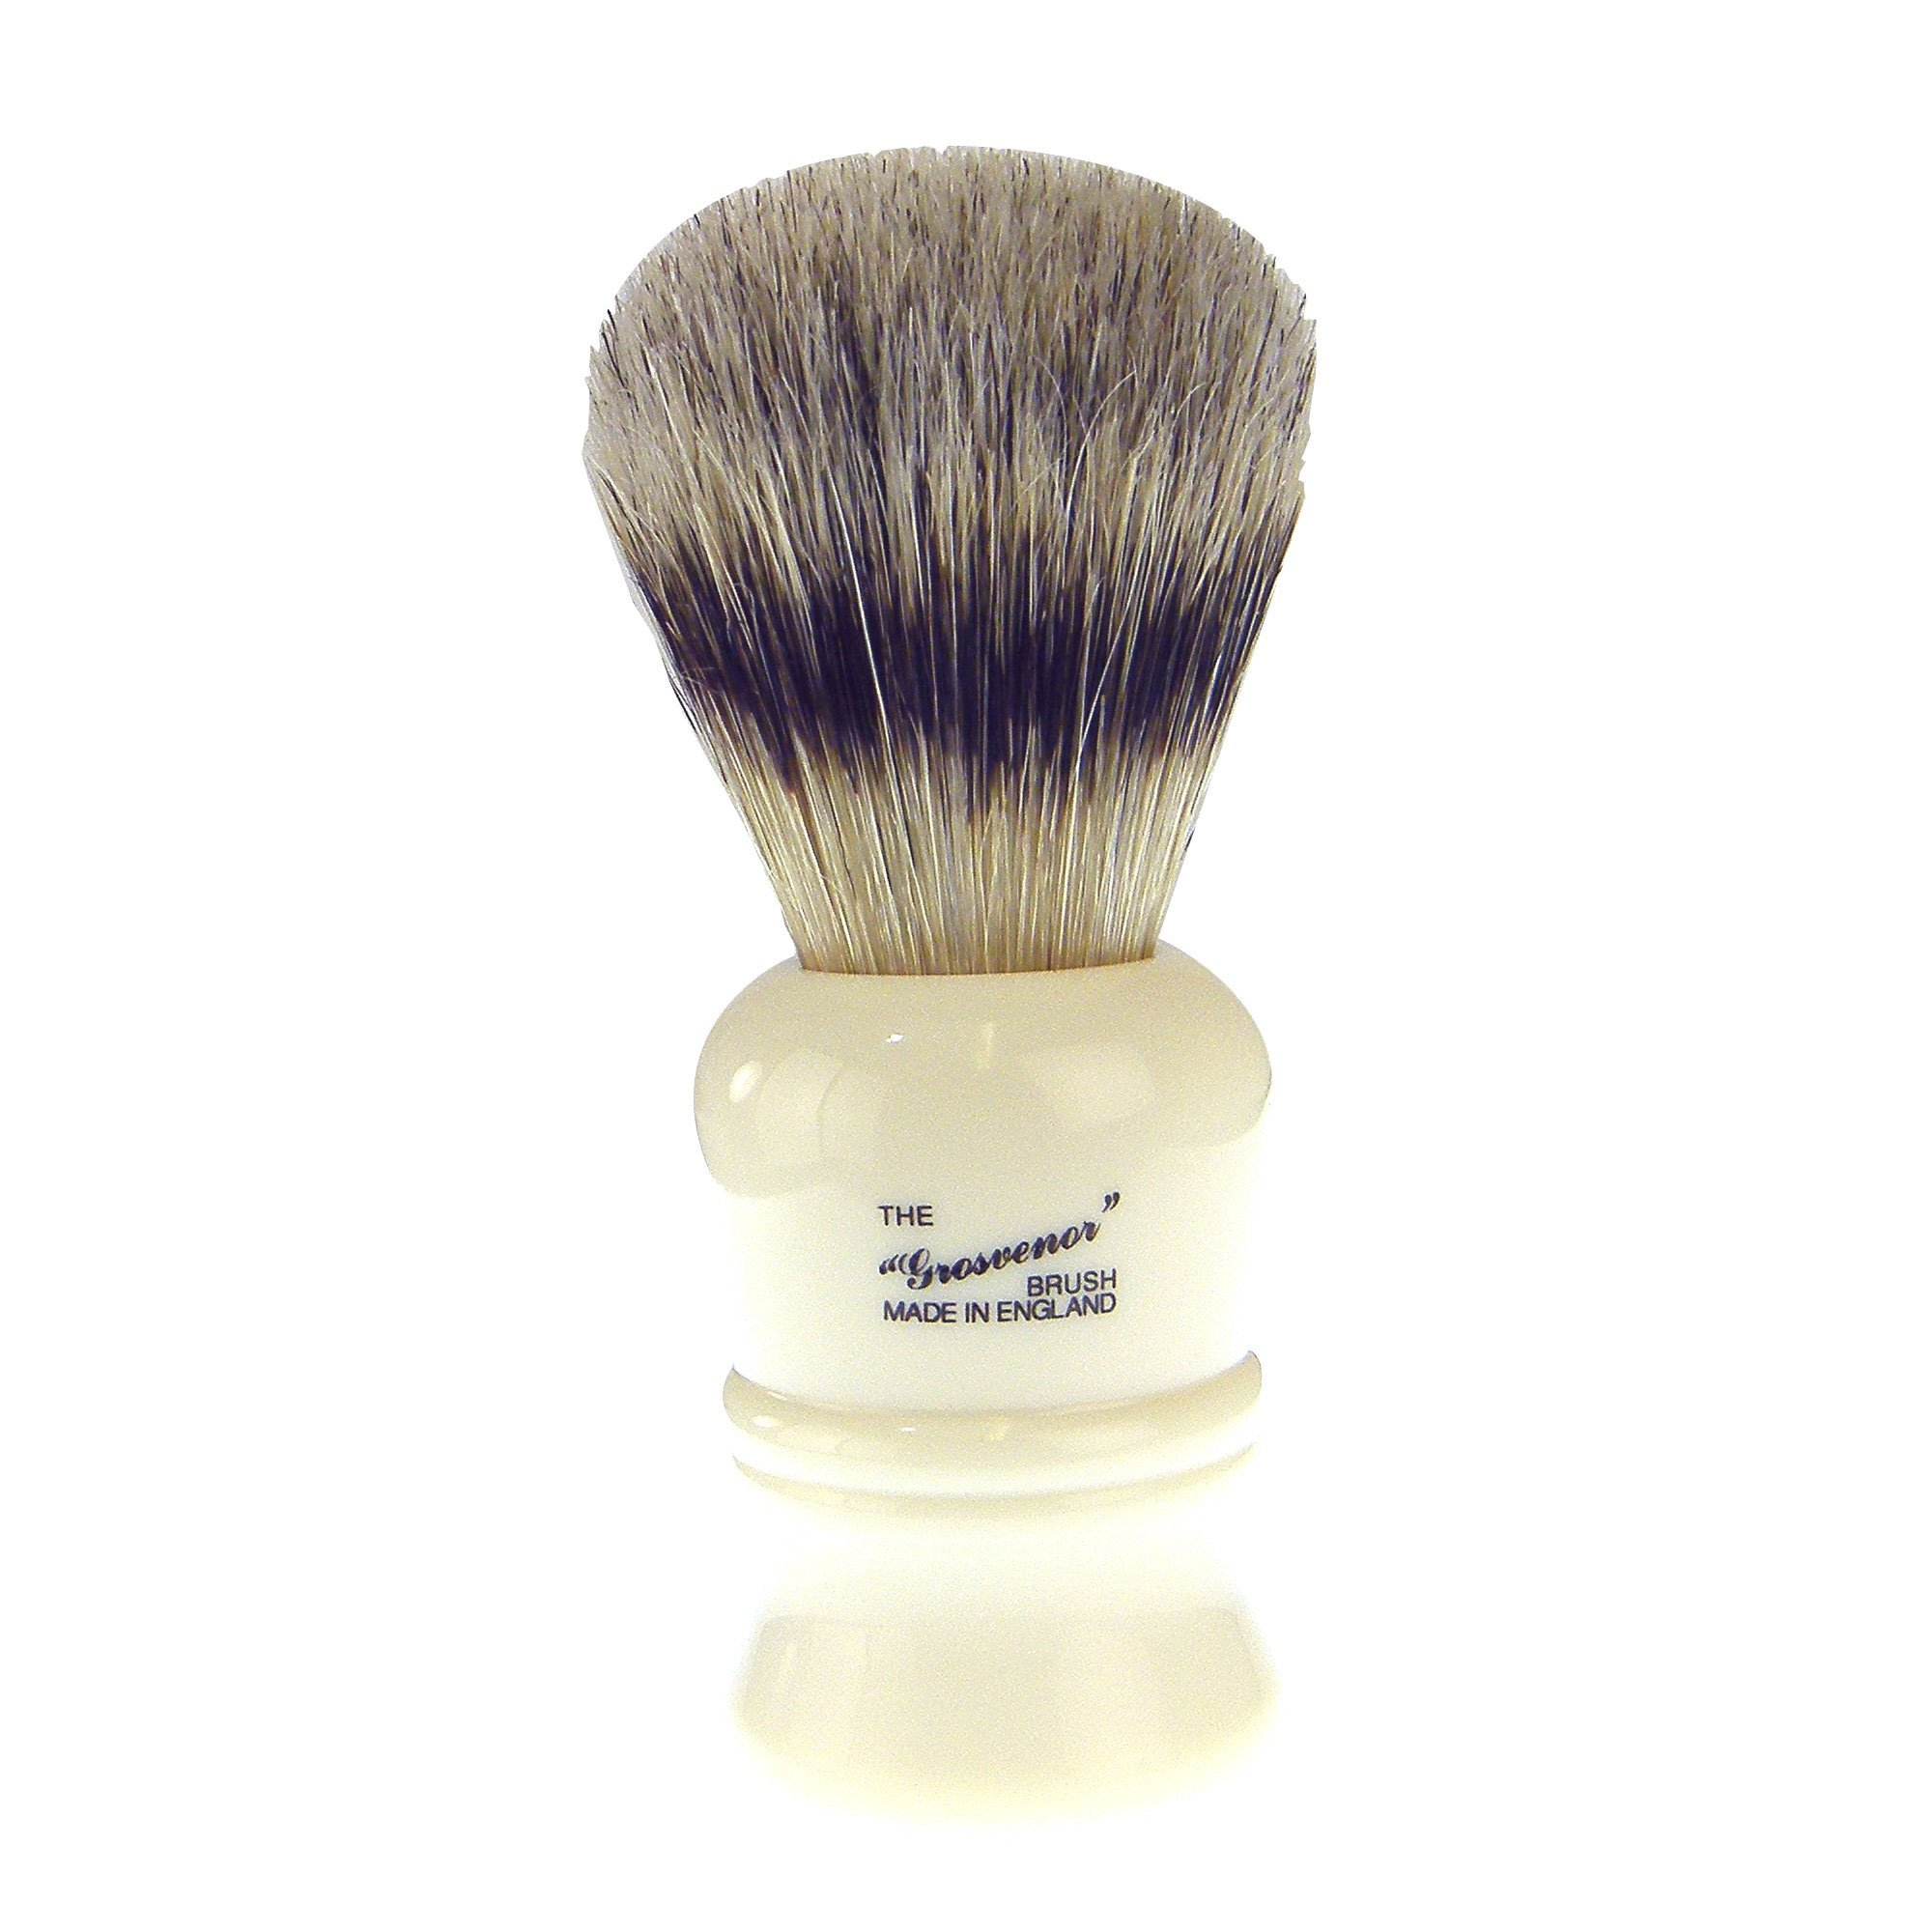 Progress Vulfix 404 Grosvenor Mixed Badger and Boar Bristle Shaving Brush product image